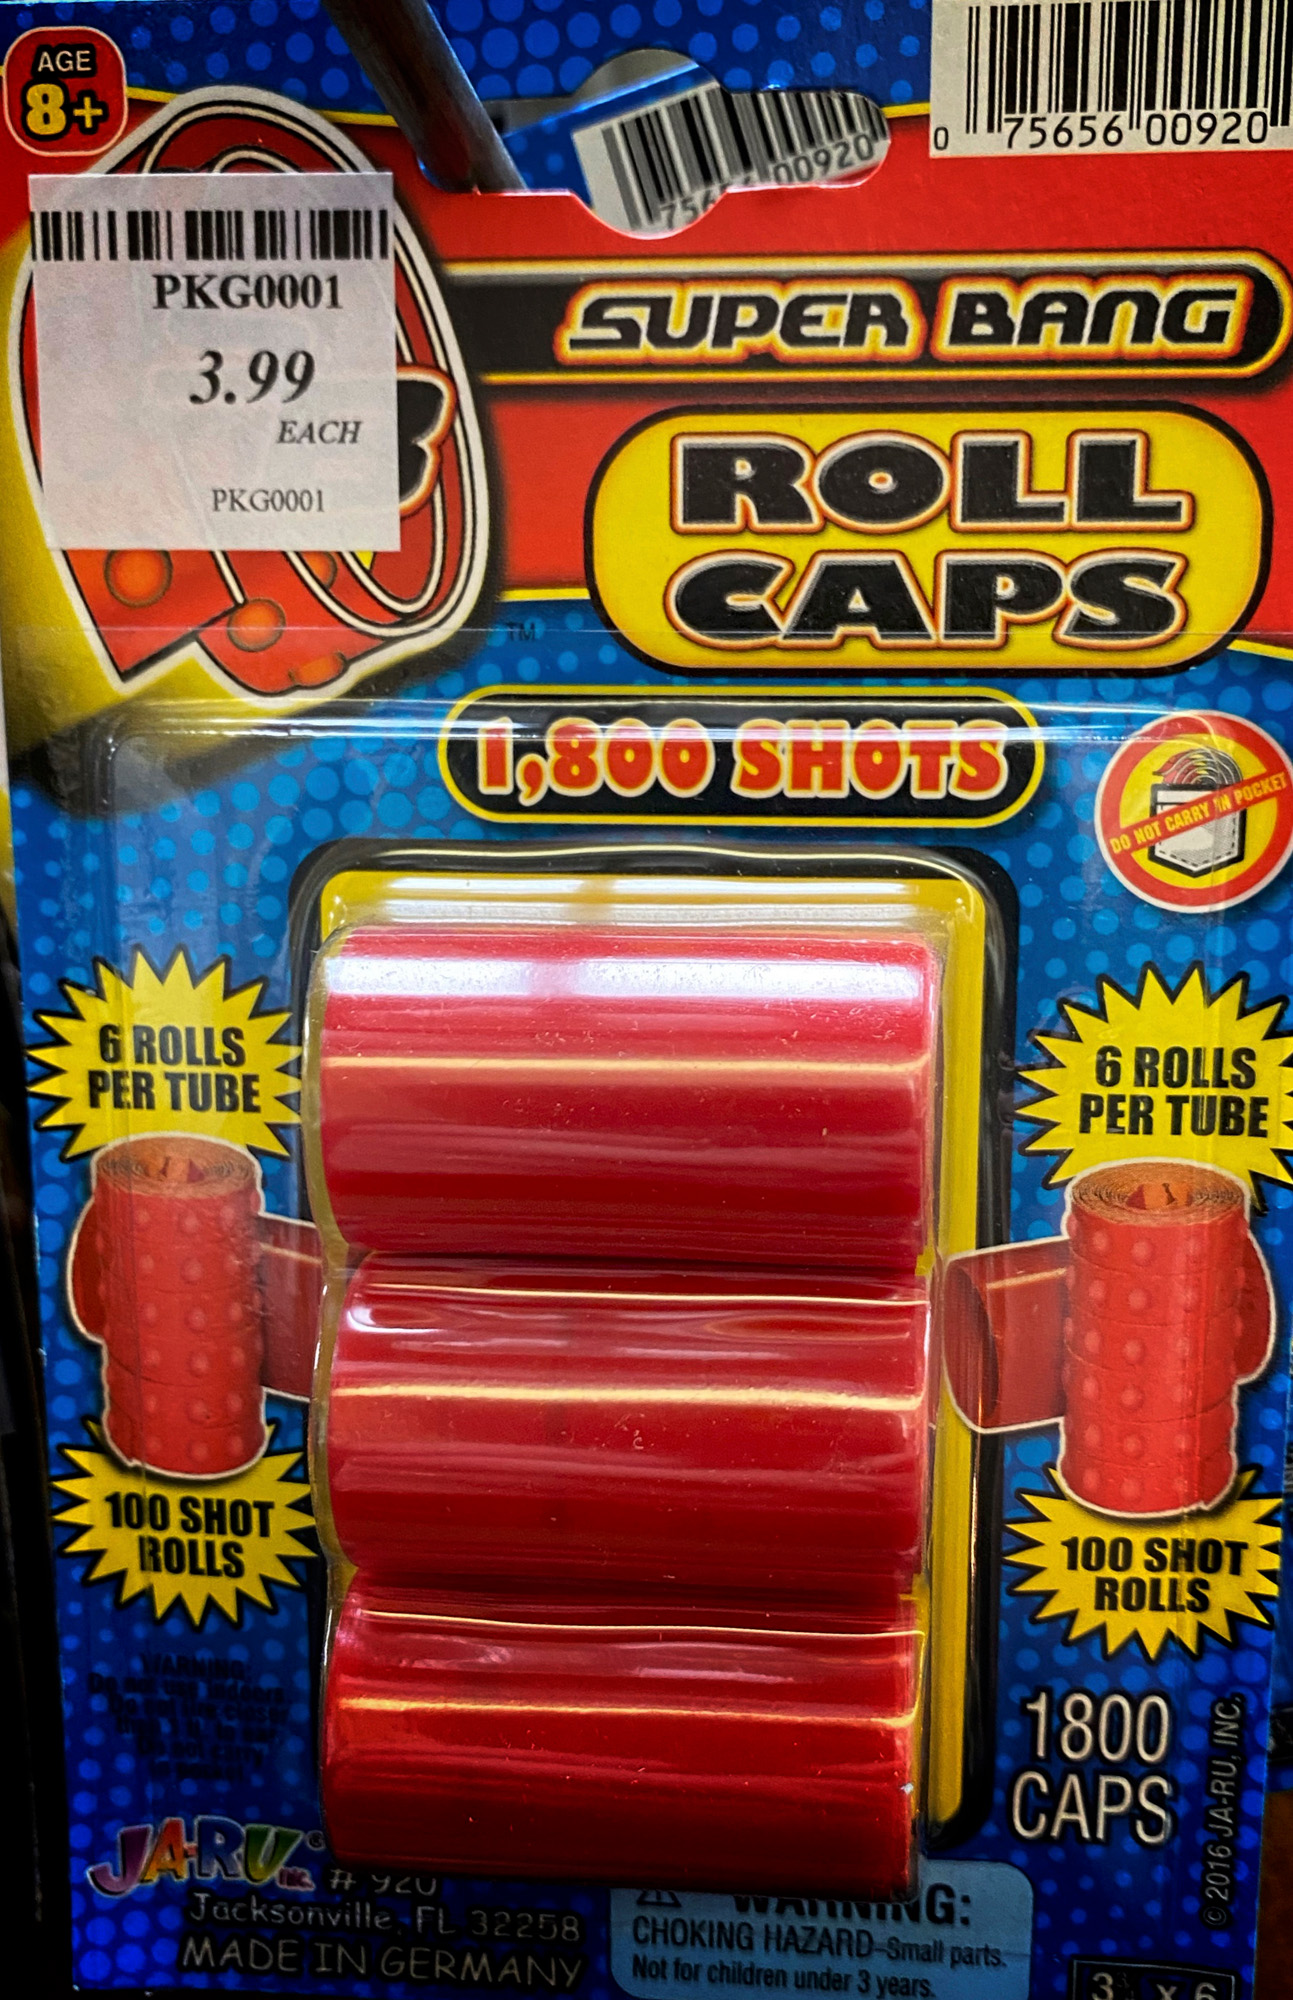 Cap guns and caps like we used to have as kids